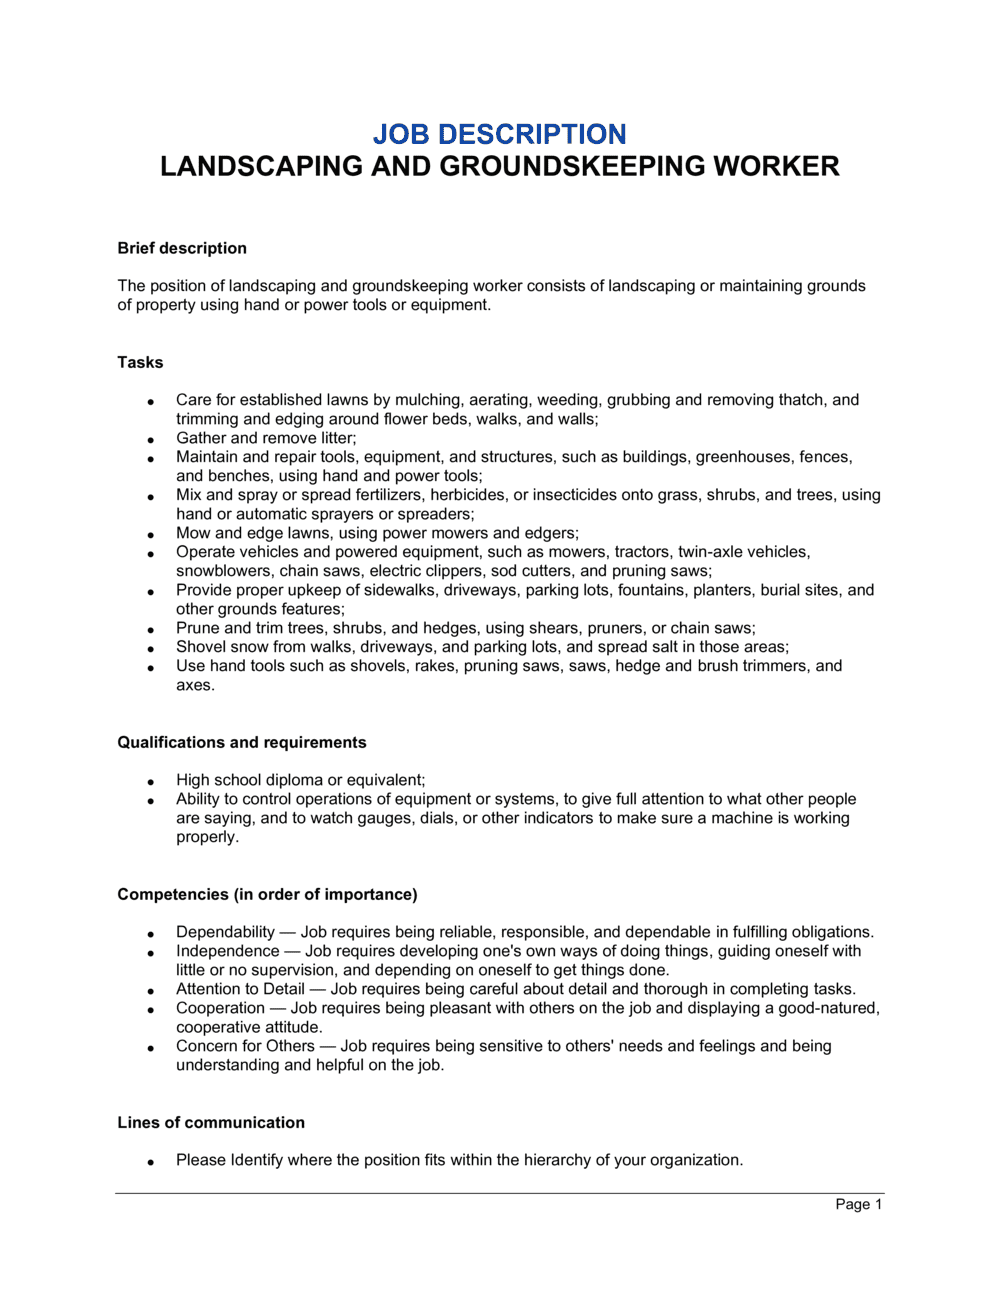 Business-in-a-Box's Landscaping and Groundskeeping Worker Job Description Template